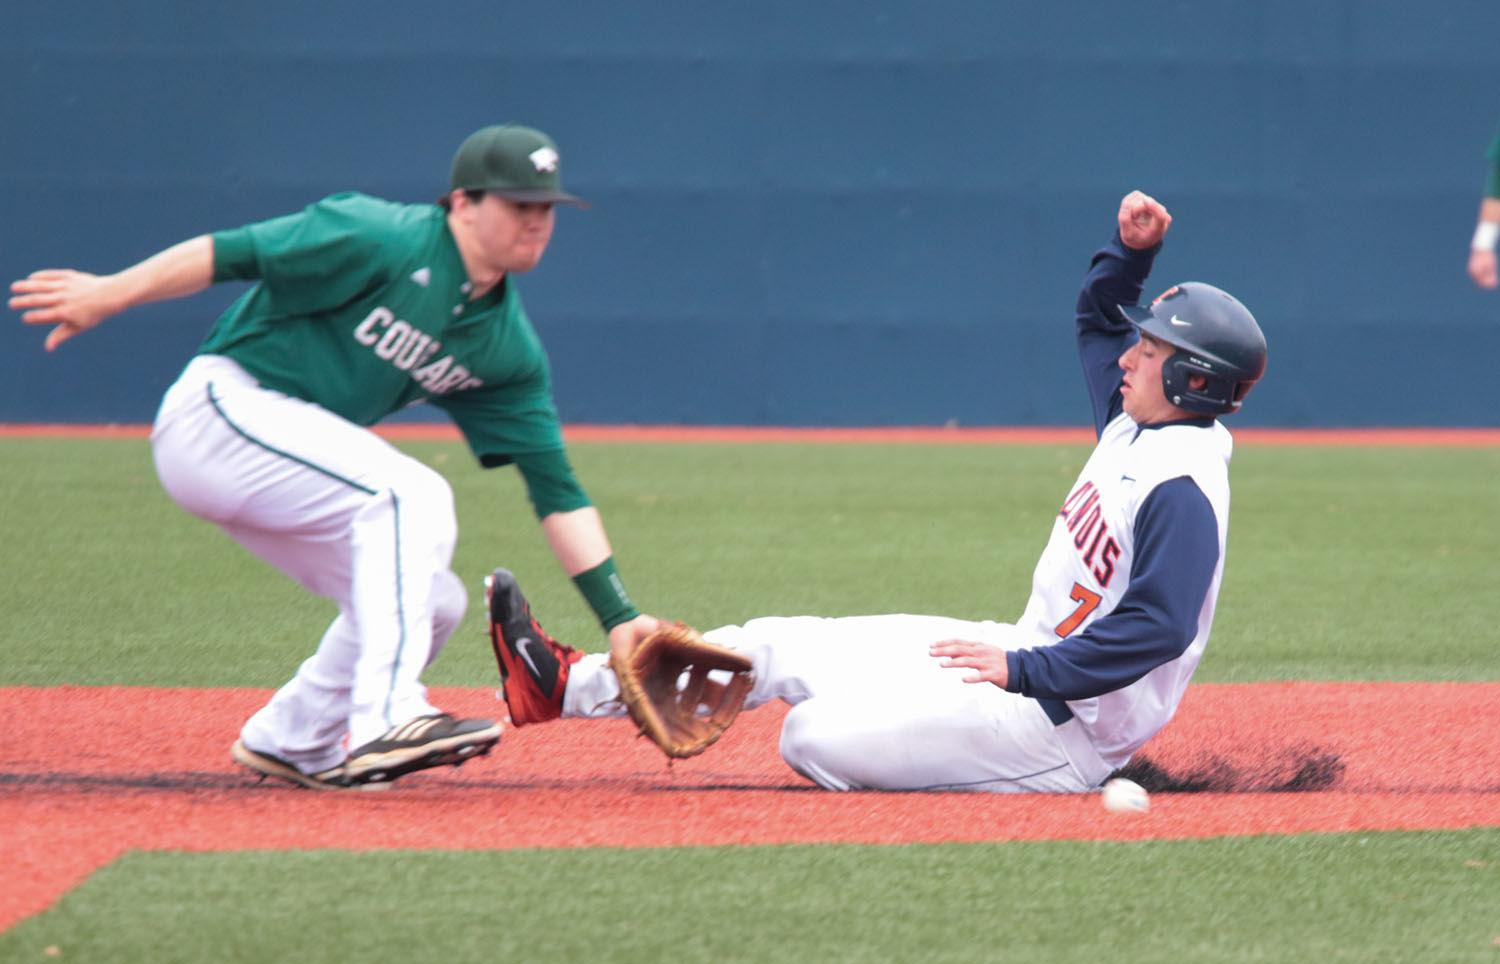 Illinois' Reid Roper slides for second base during the baseball game v. Chicago State at Illinois Field on Tuesday. Illinois won 7-3.